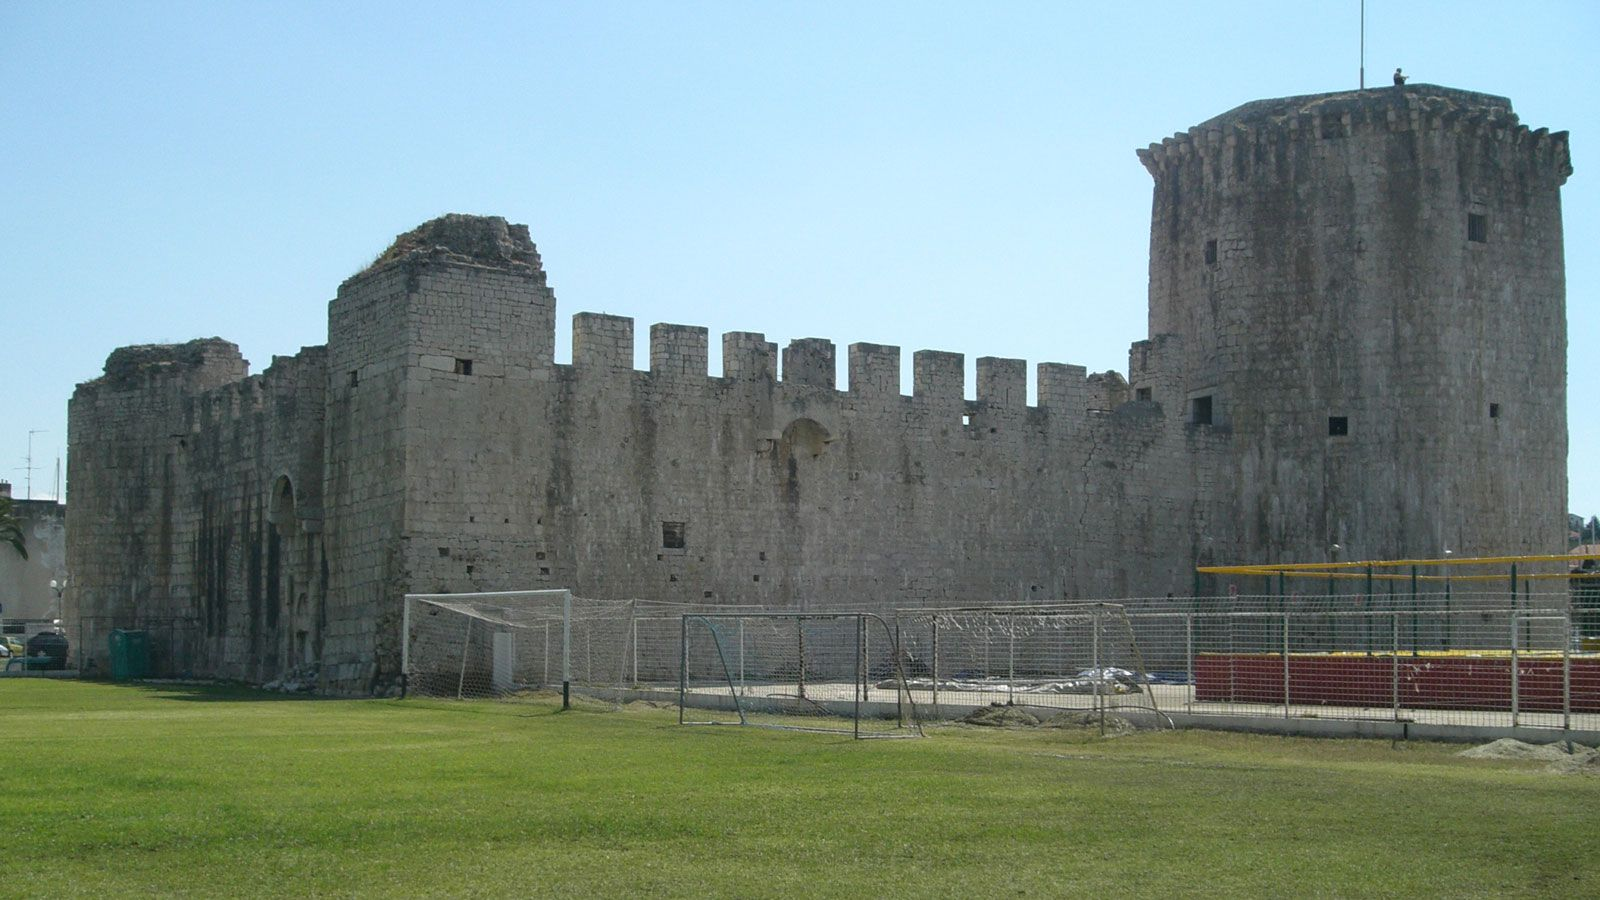 Kamerlengo Castle sits behind one of the Igraliste Batarija goalposts.